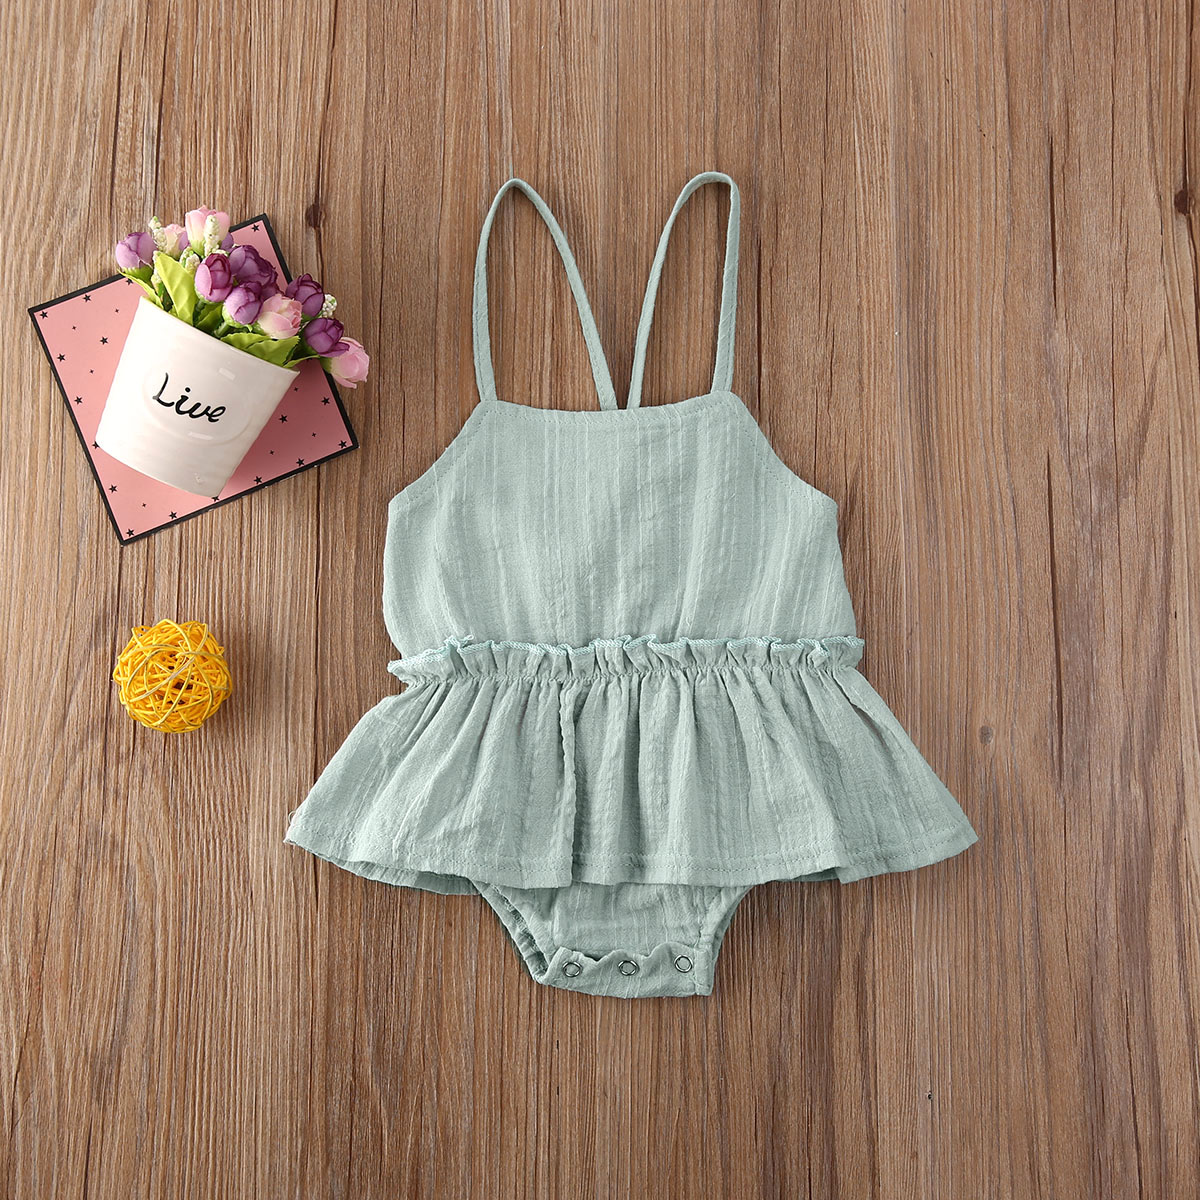 Pudcoco Newborn Baby Girl Clothes Solid Color Sleeveless Strap Ruffle Romper Jumpsuit One-Piece Outfits Cotton Clothes